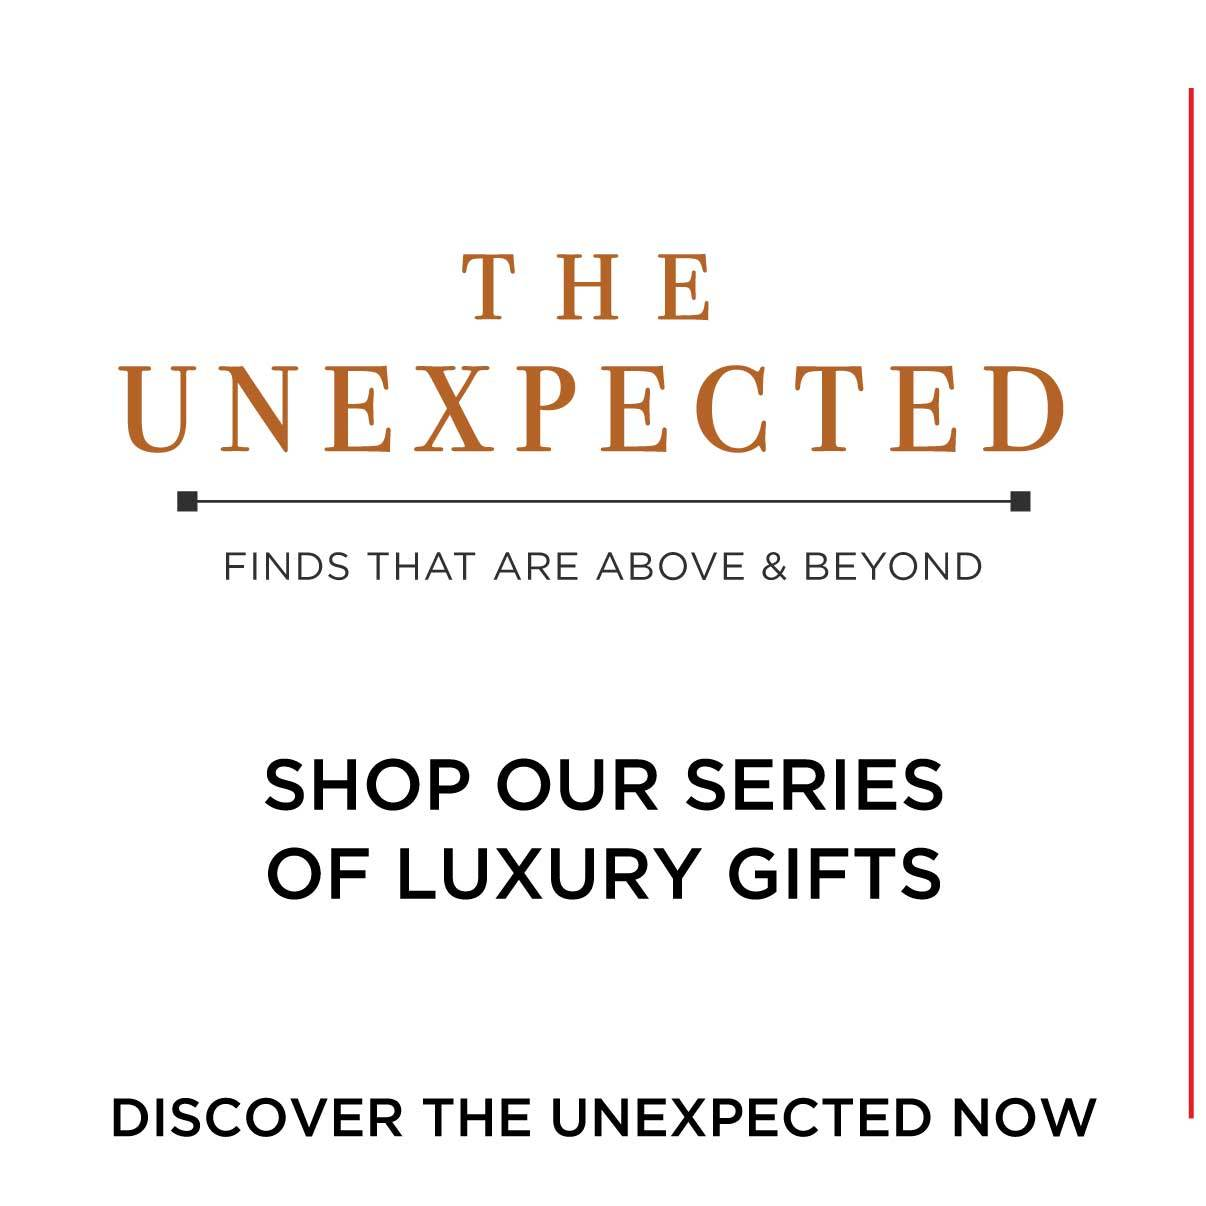 The Unexpected - Finds that are Above & Beyond